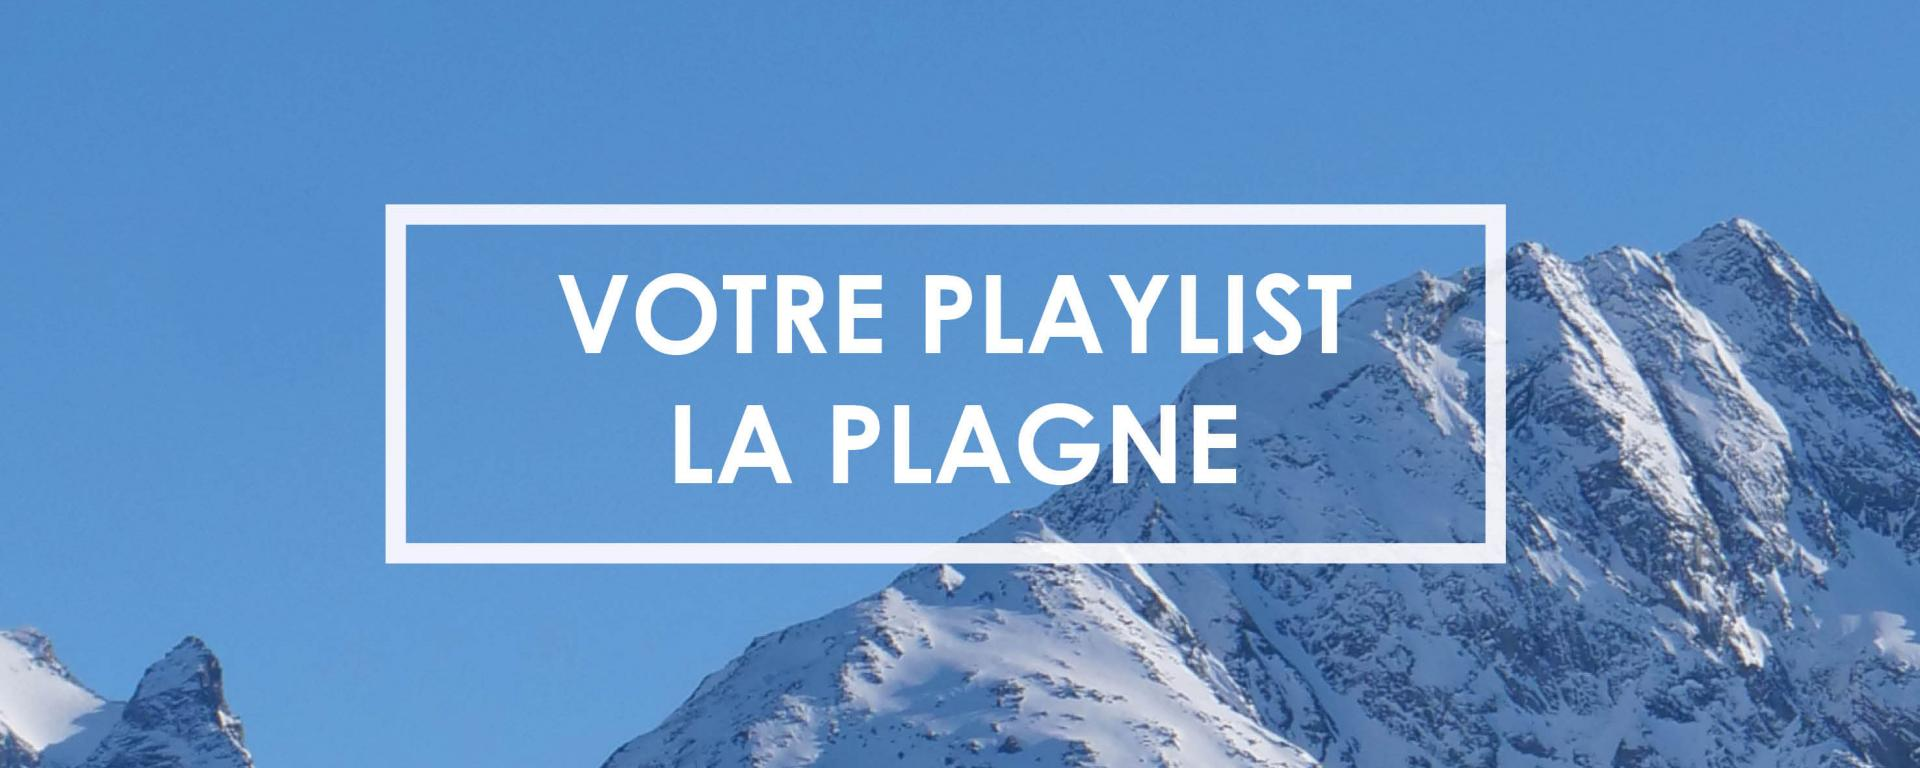 Playlist La Plagne